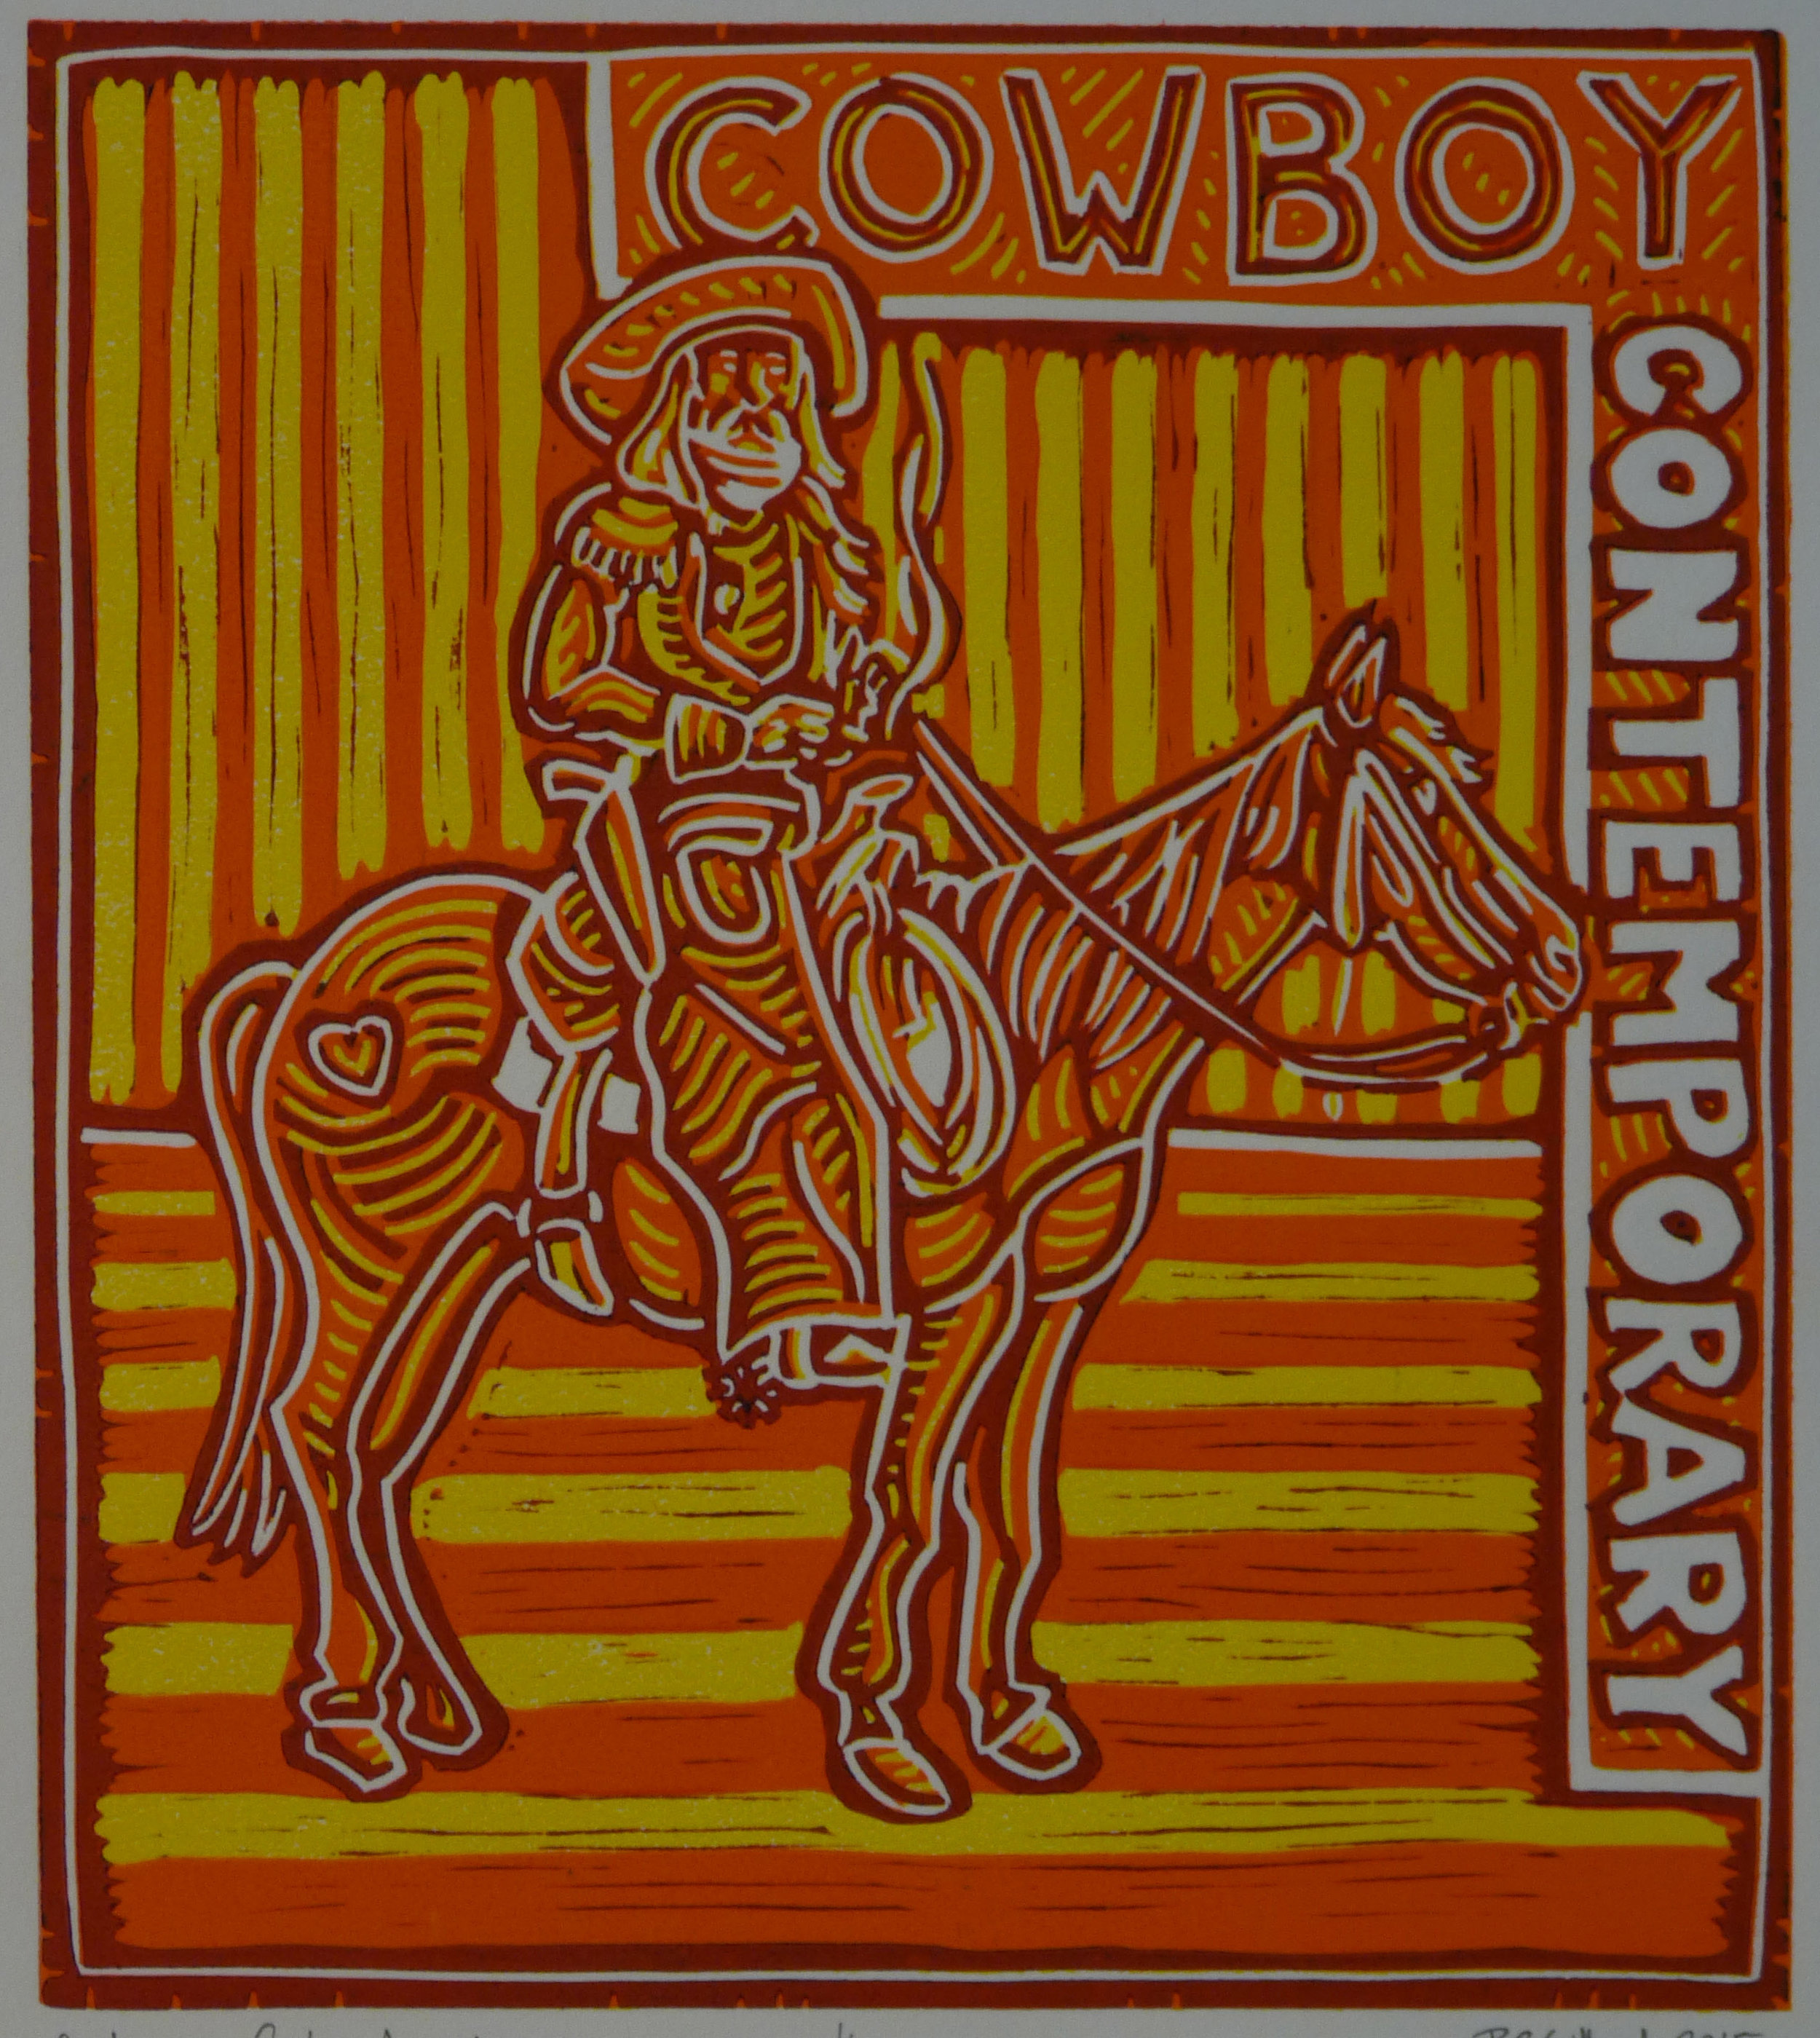 Contemporary Cowboy, Apricot 2014